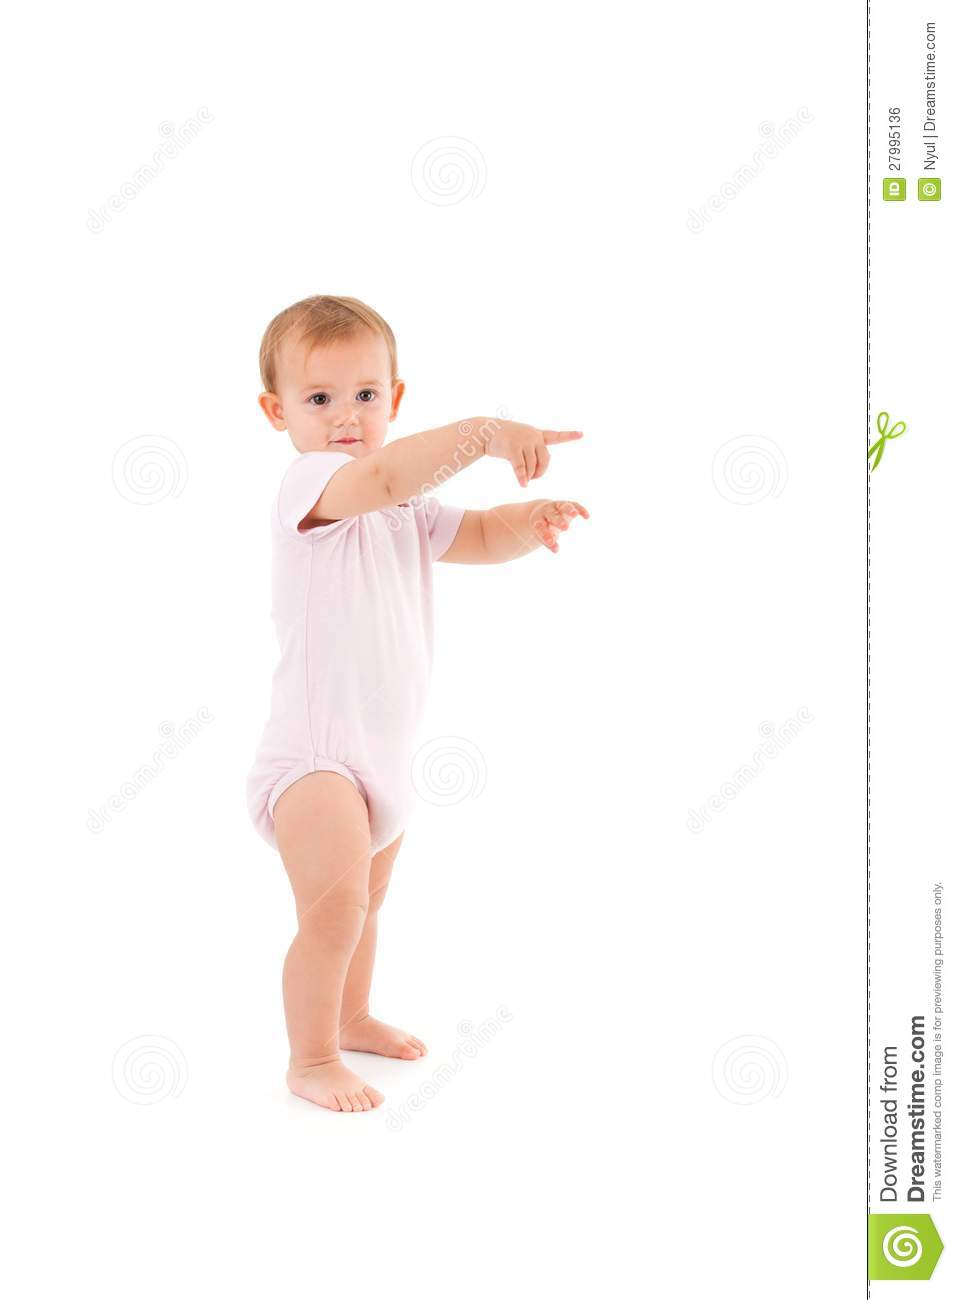 Adorable baby girl making first steps royalty free stock image image